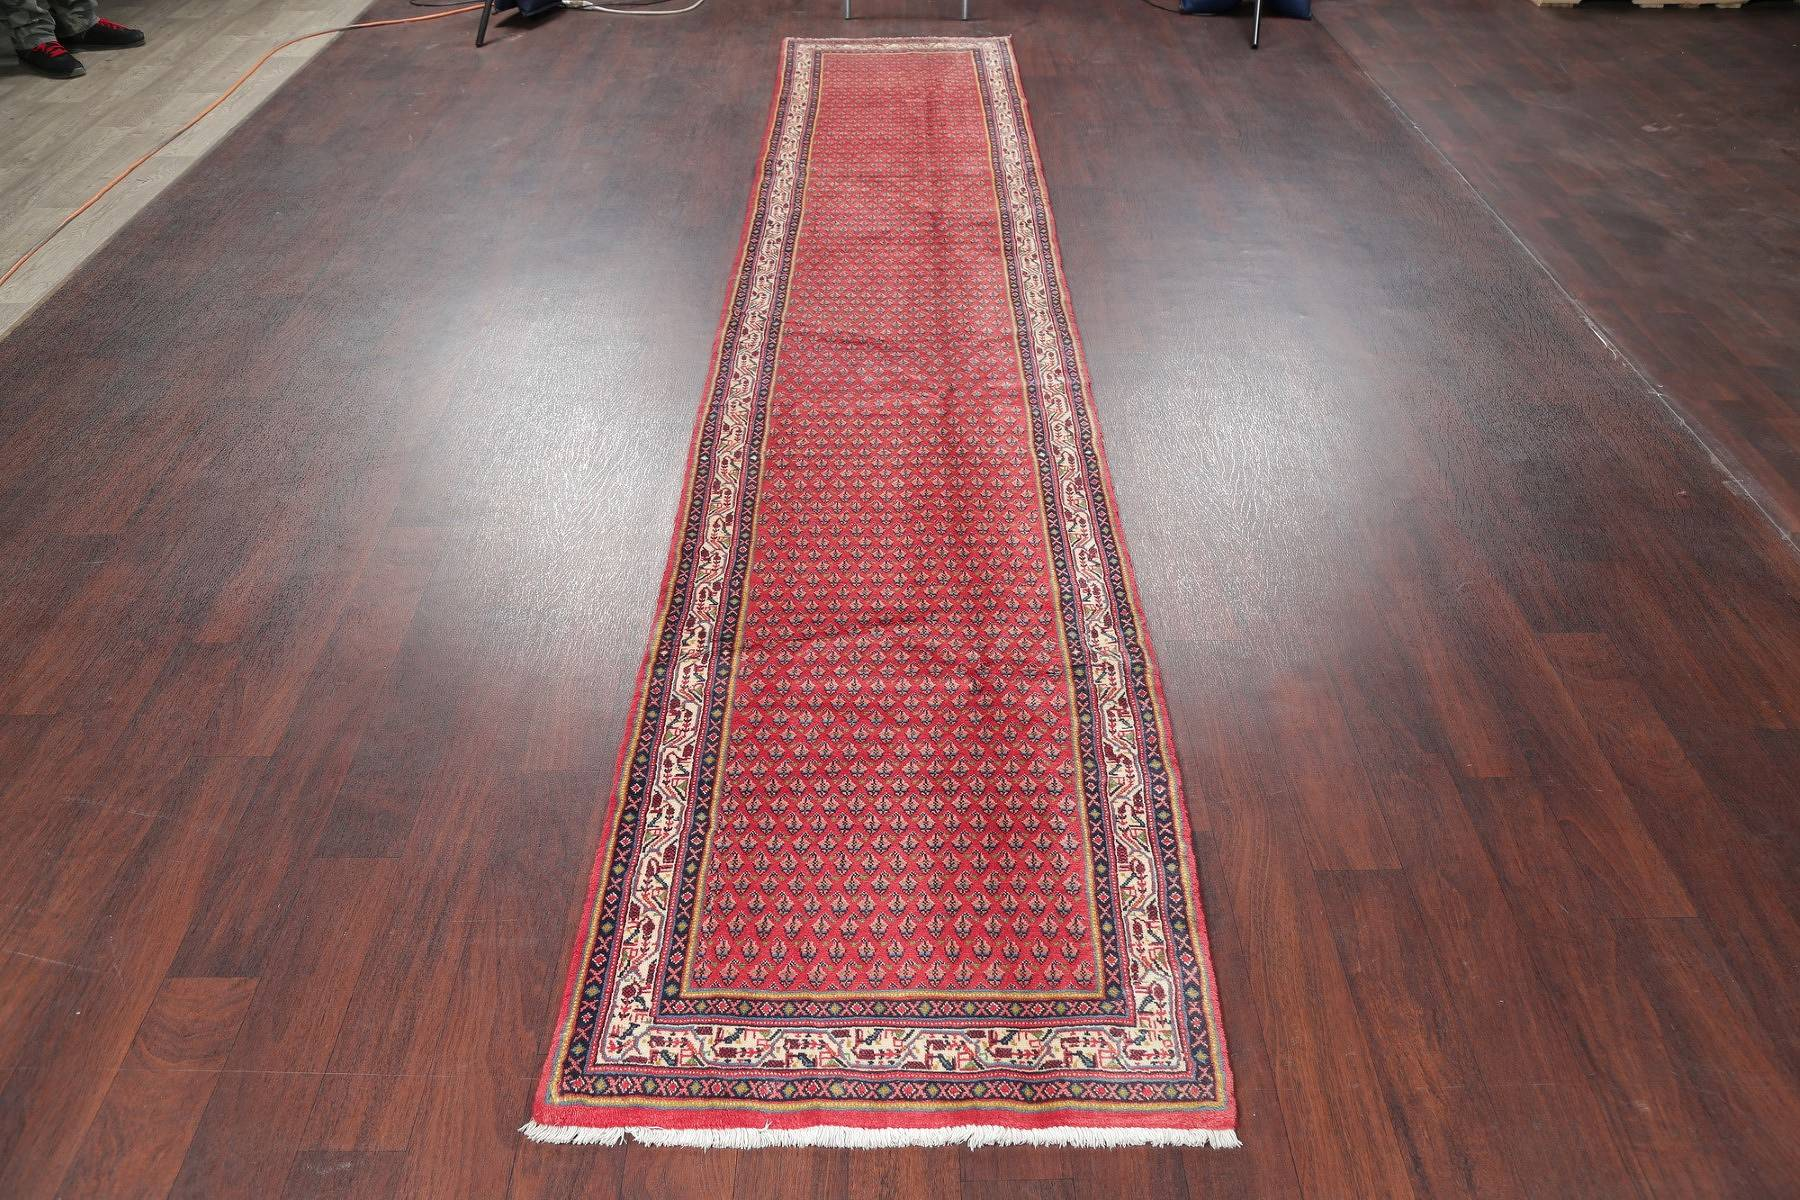 All-Over Paisley Red Botemir Persian Hand-Knotted Runner Rug Wool 3X14